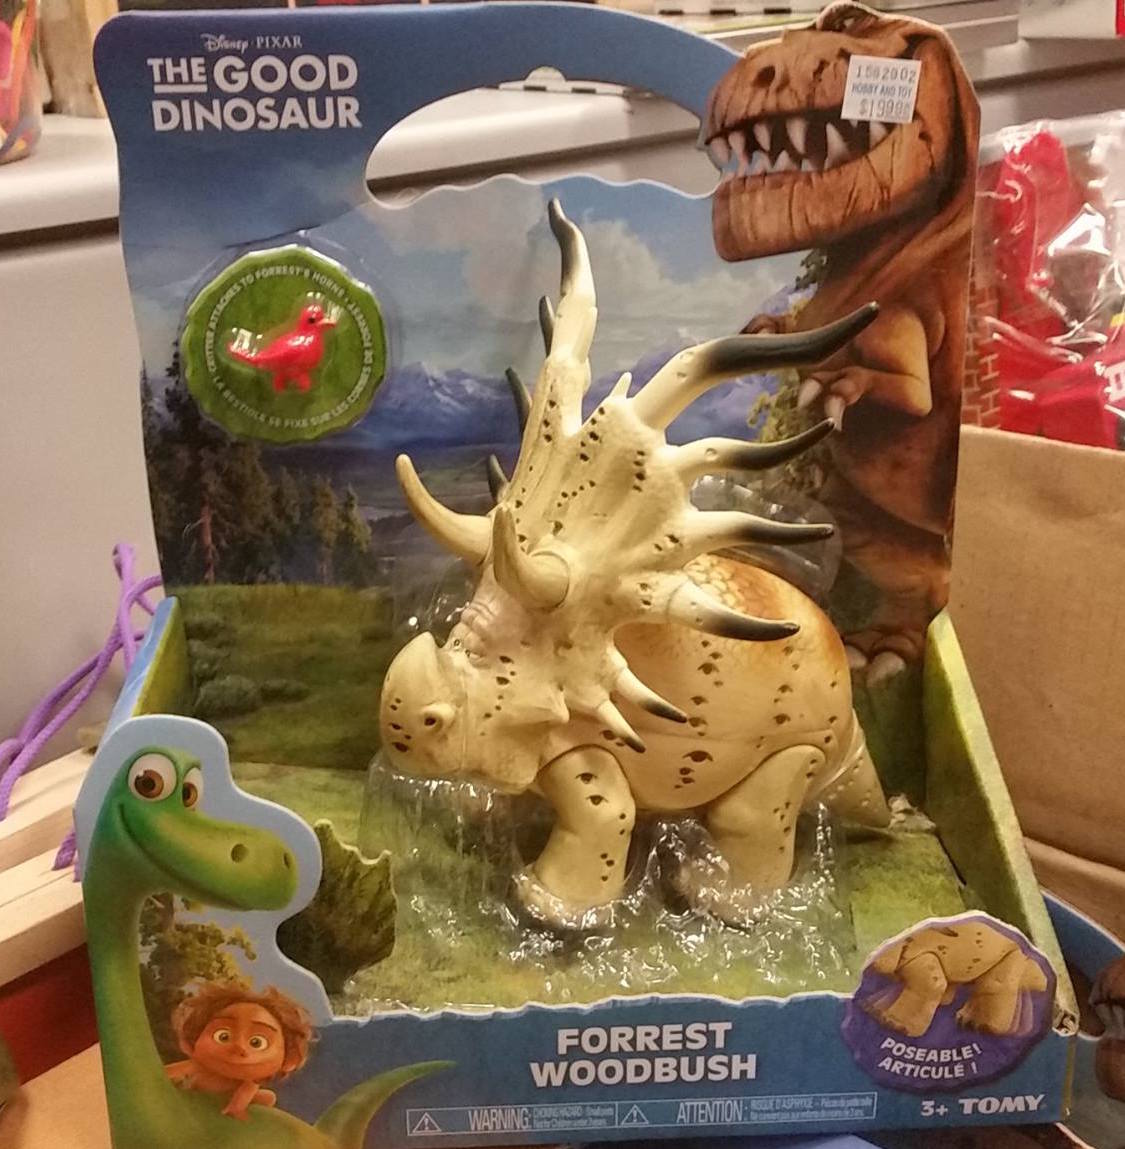 Forrest Woodbush toy from Good Dinosaur movie